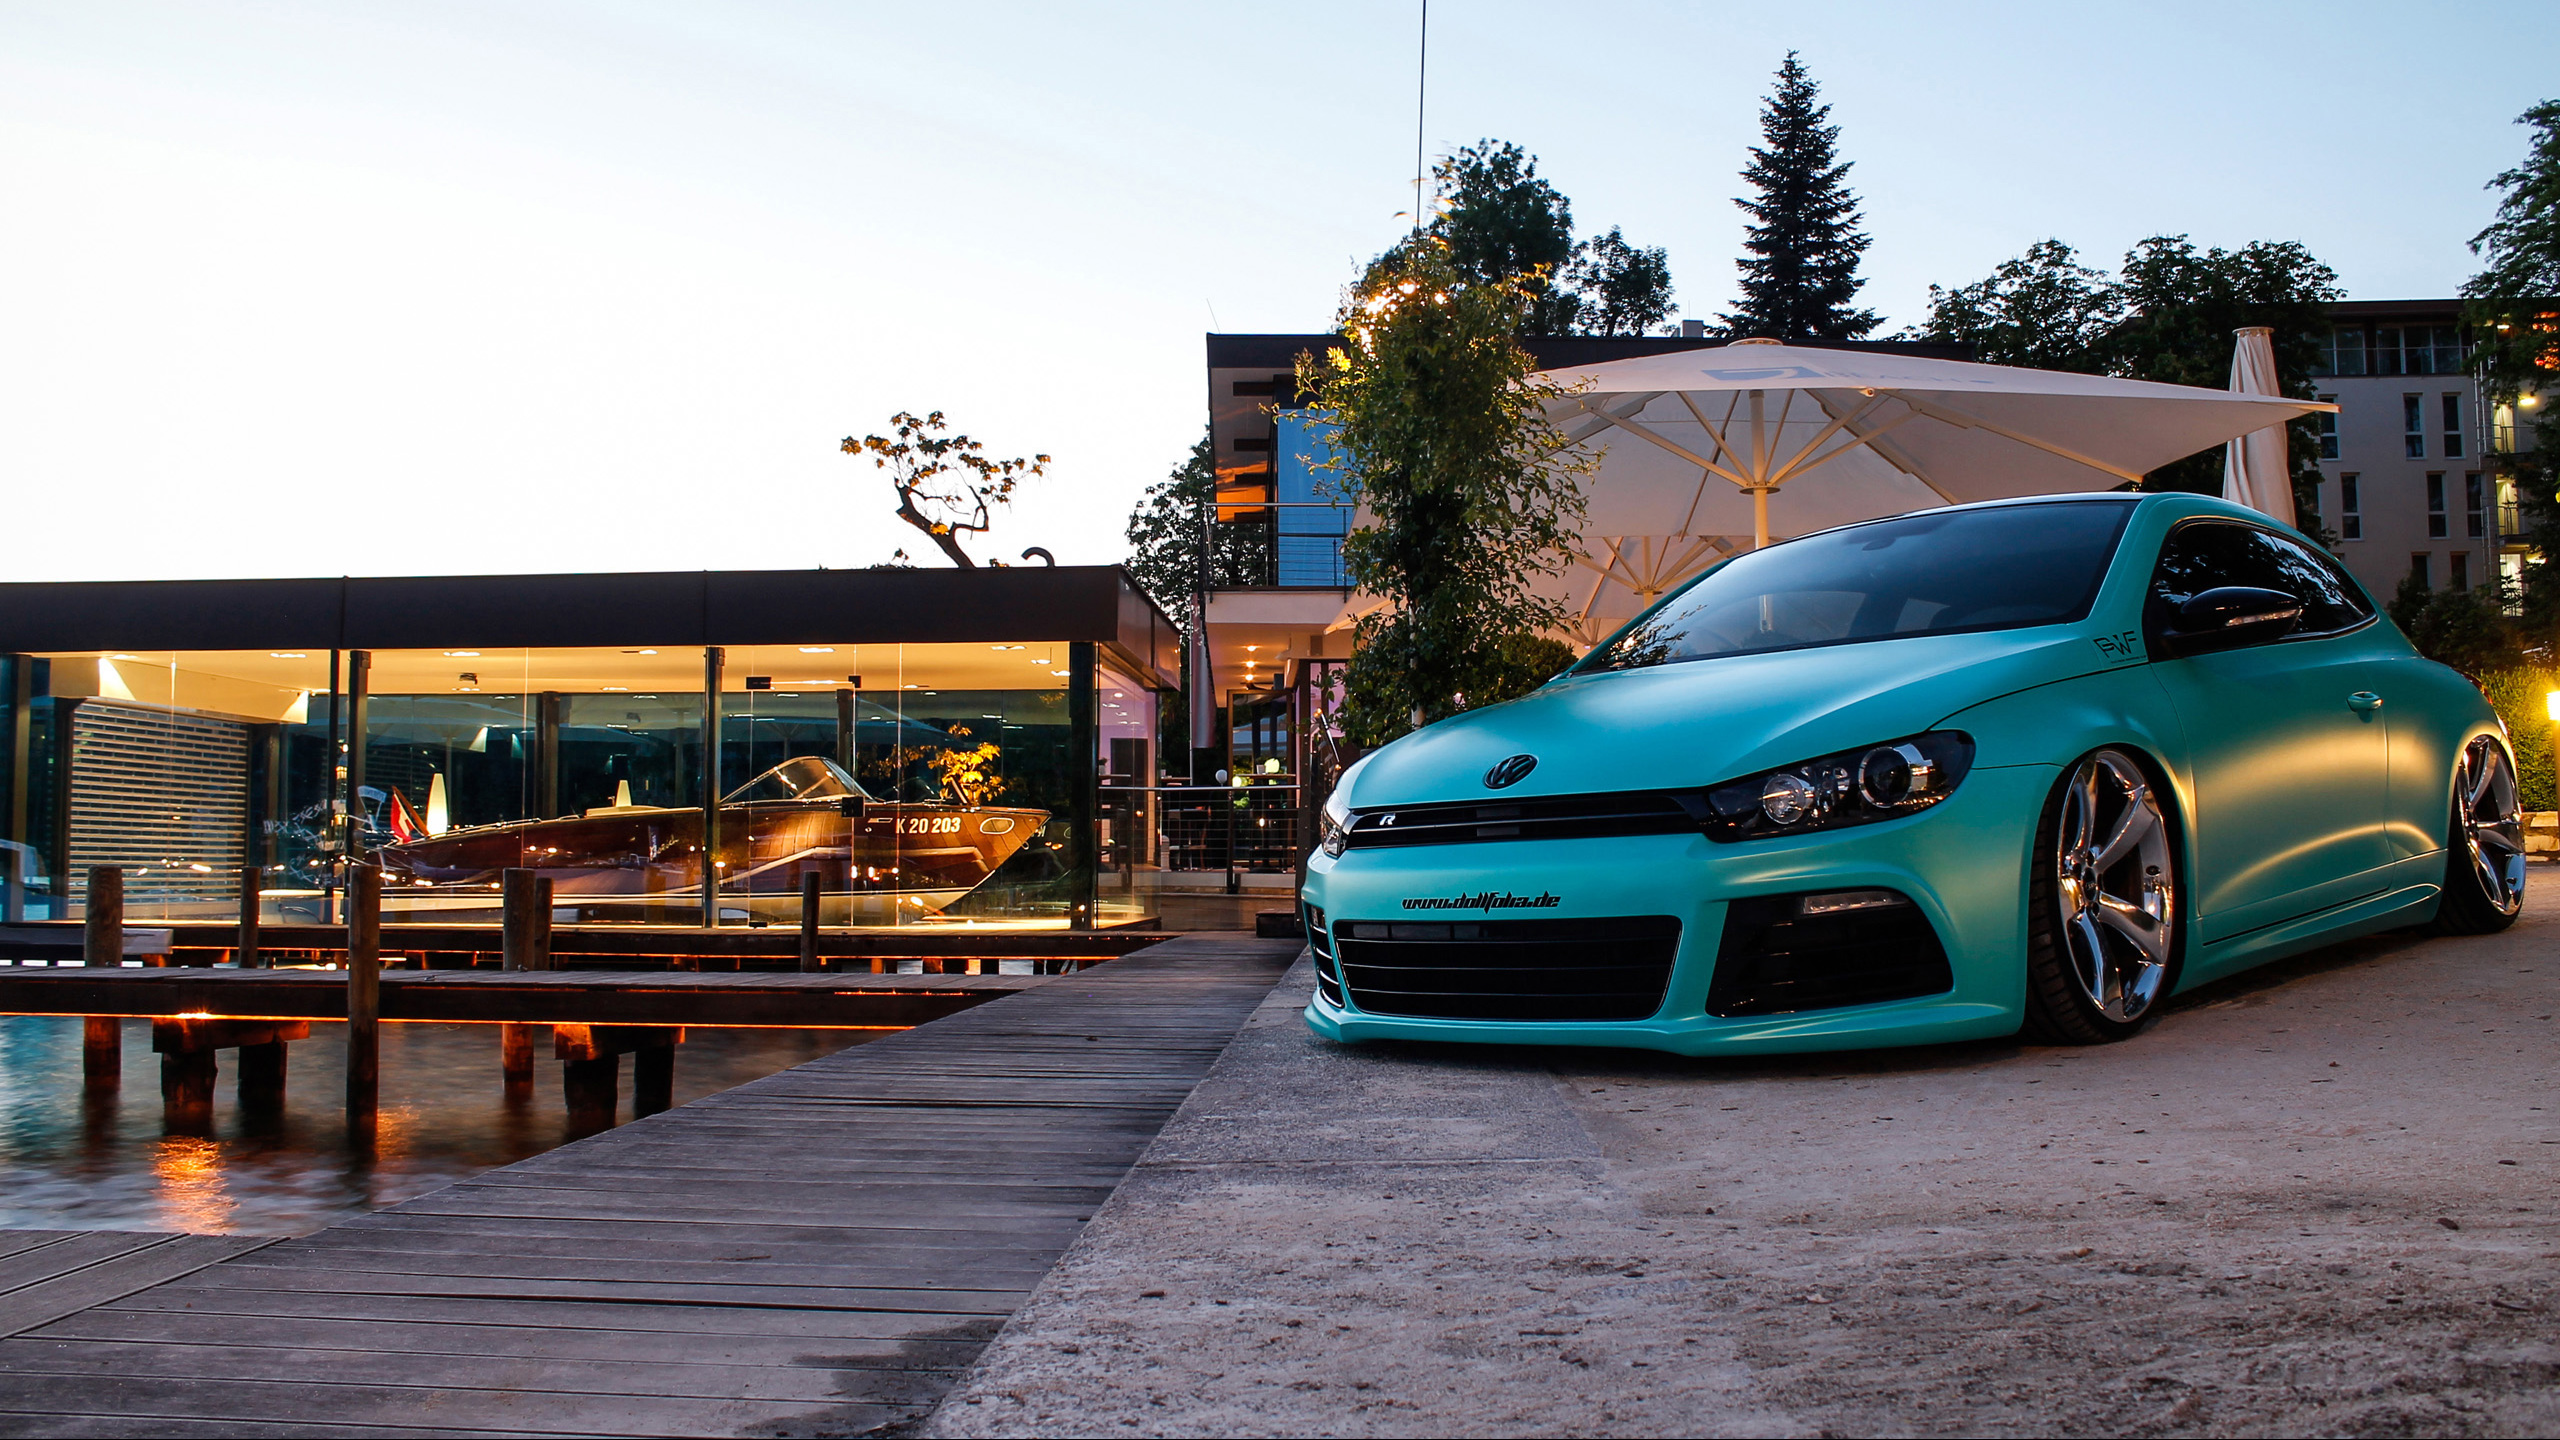 bruxsafol volkswagen scirocco 2014 wallpaper | hd car wallpapers